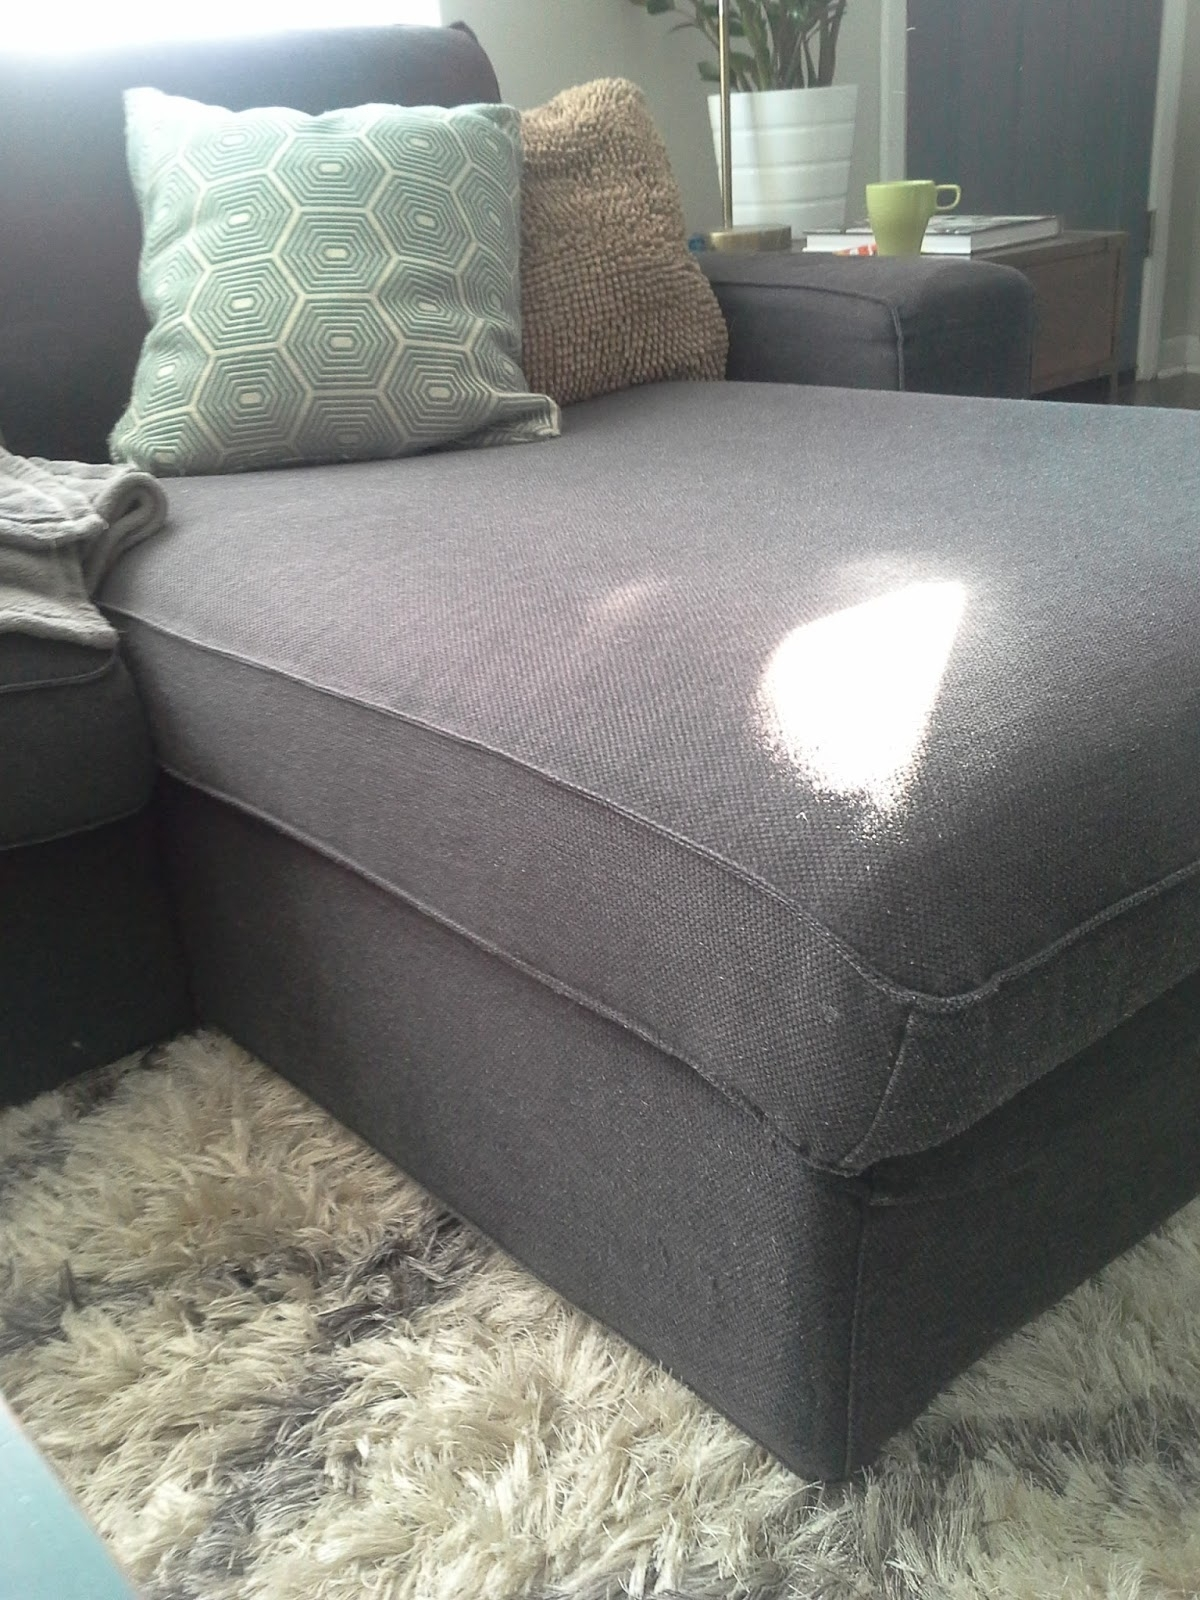 Lilly's Home Designs: Ikea Kivik Review Pertaining To Recent Ikea Kivik Chaises (View 10 of 15)